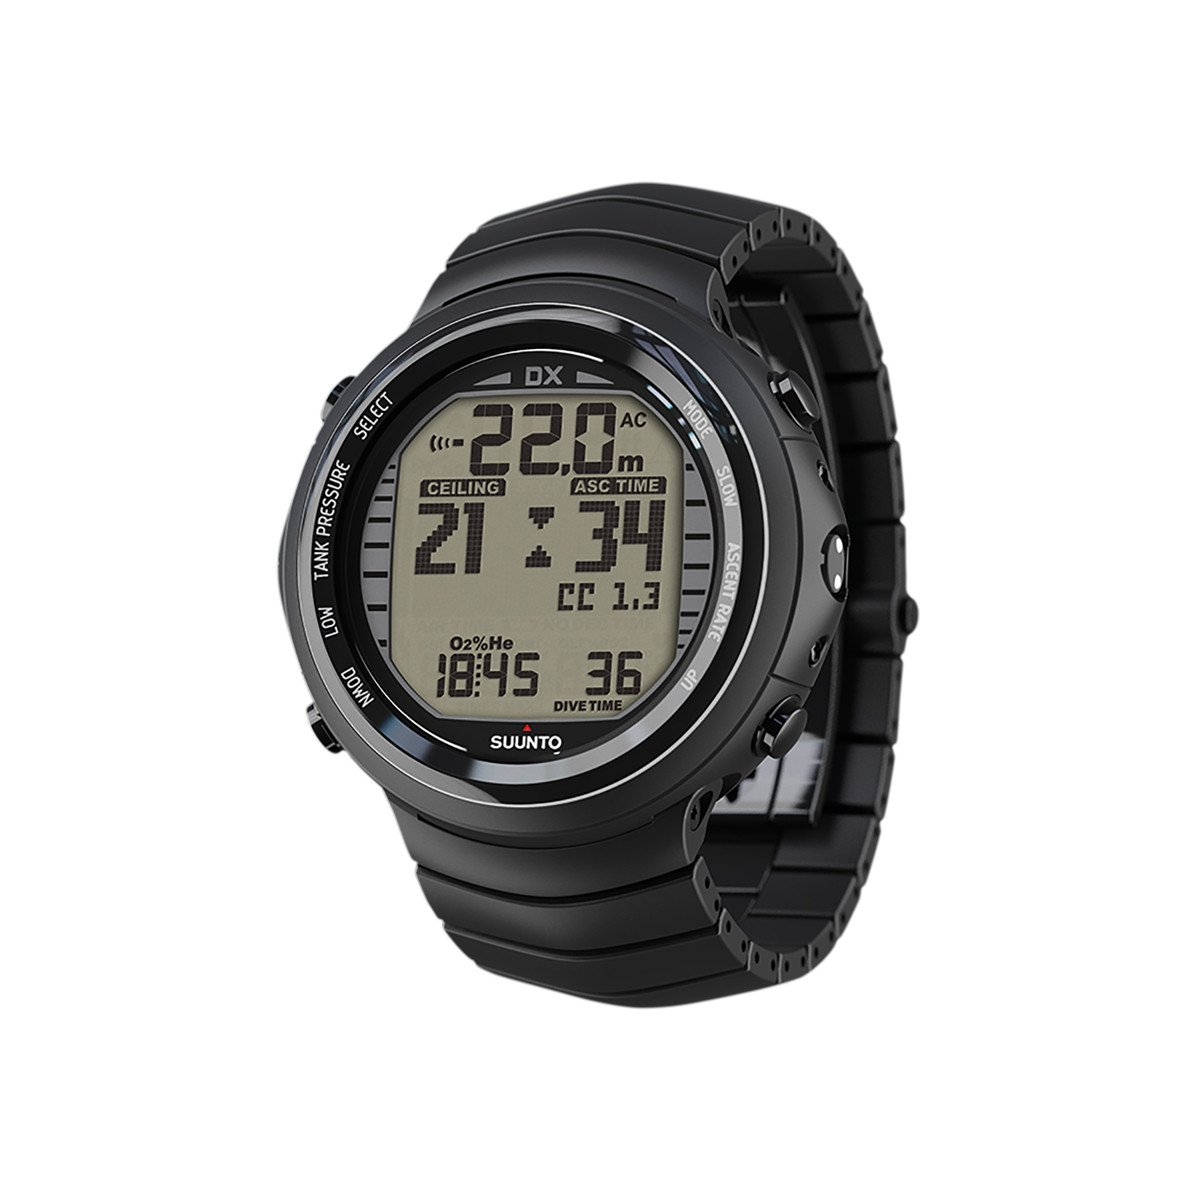 Suunto DX BLACK TITANIUM WITH USB